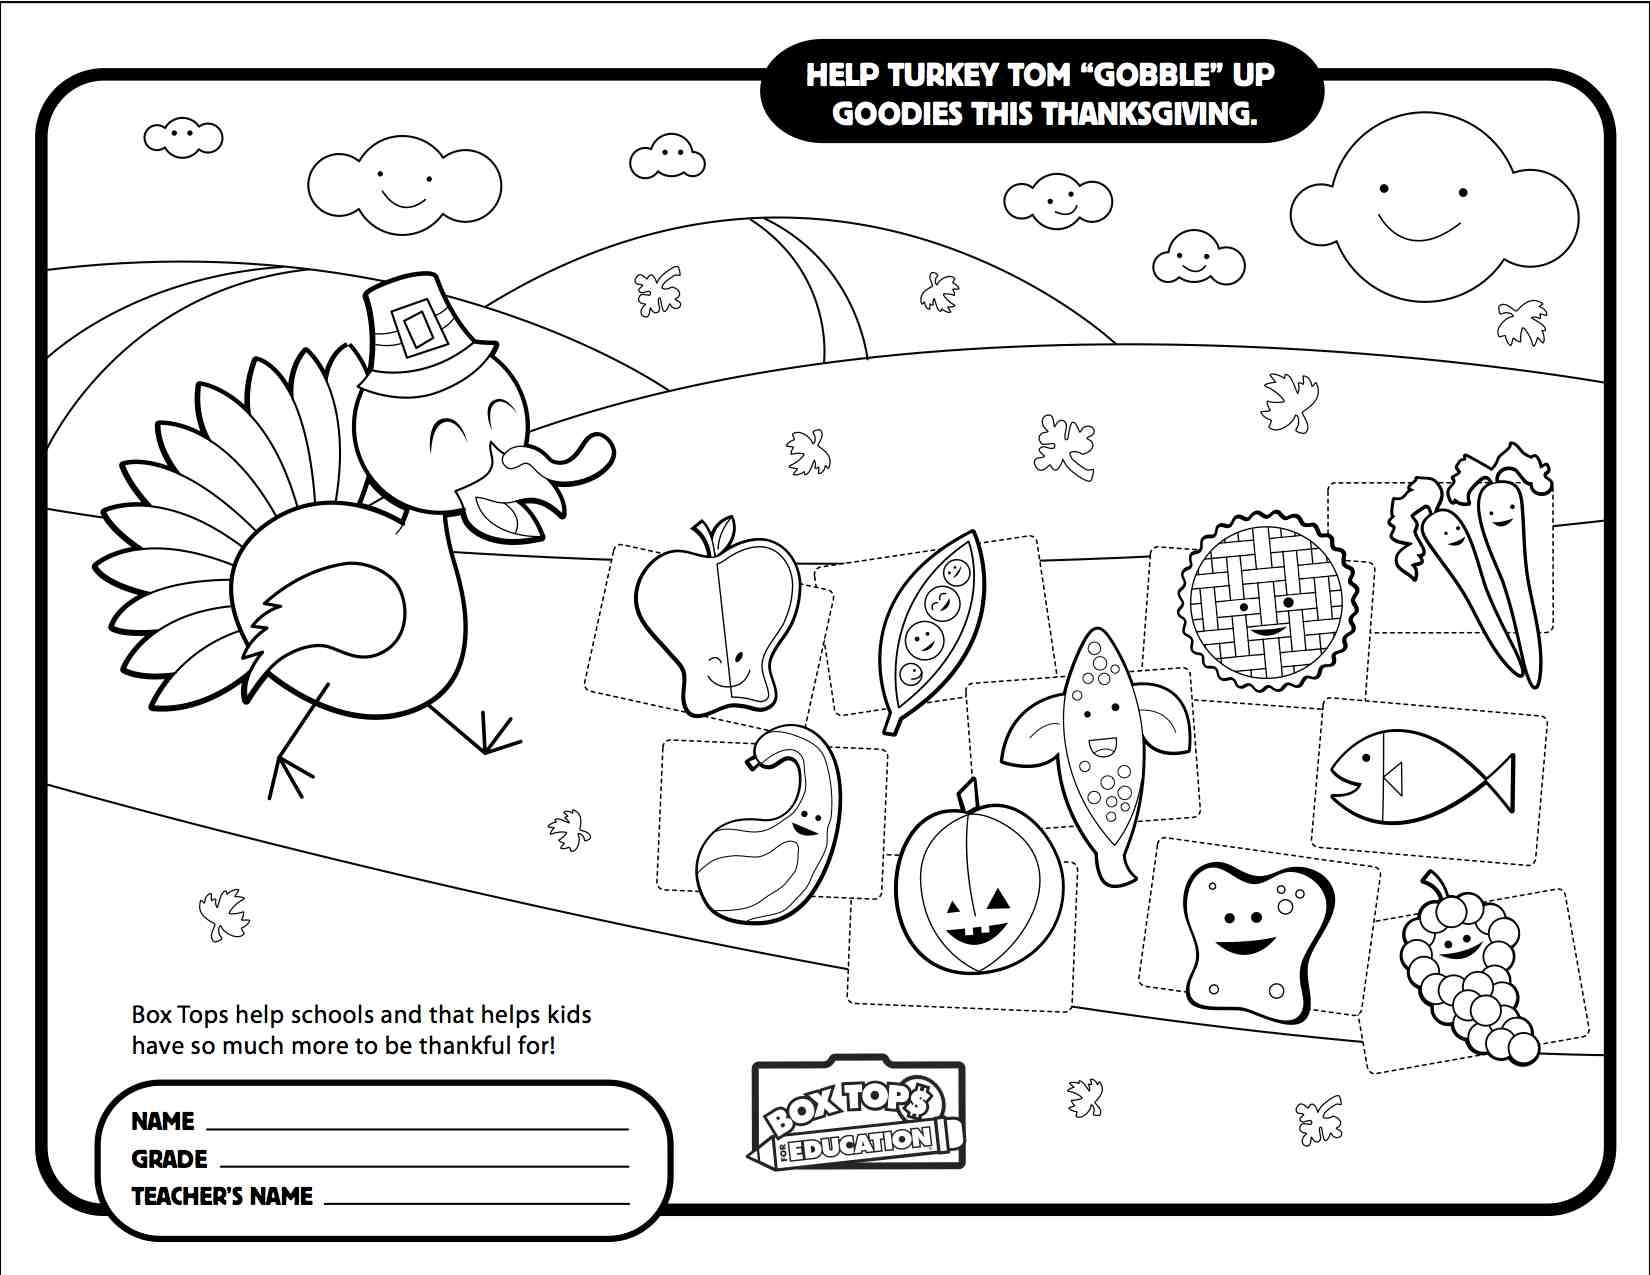 Turkey Collection Sheet